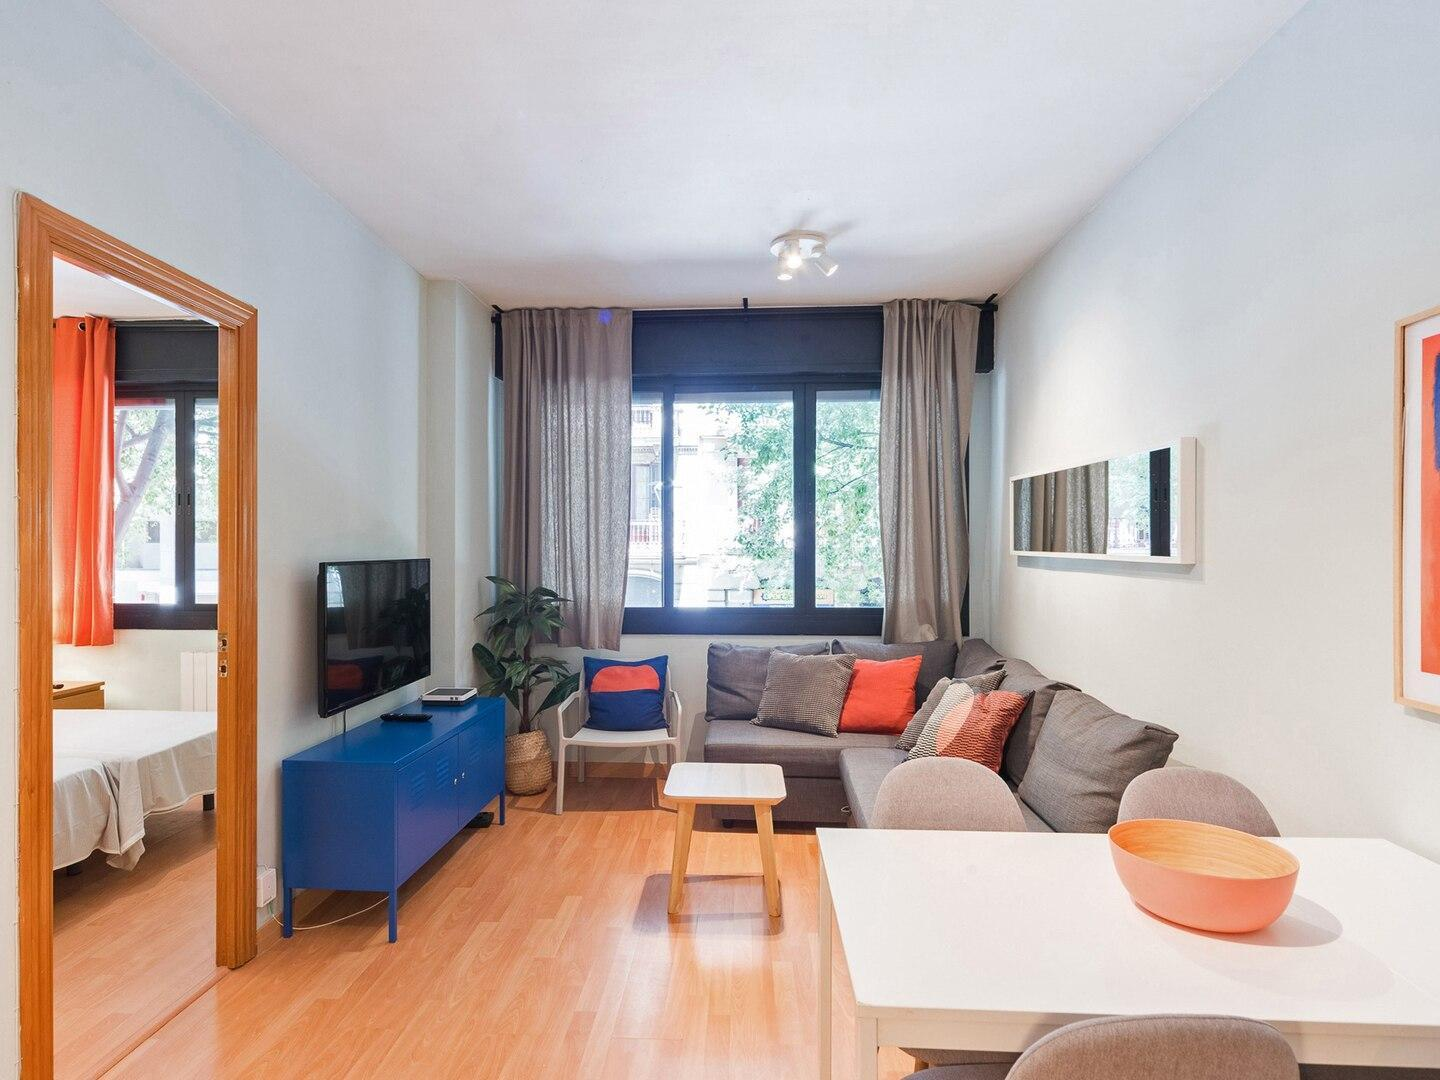 Modern and bright design in a central 3bdr apt